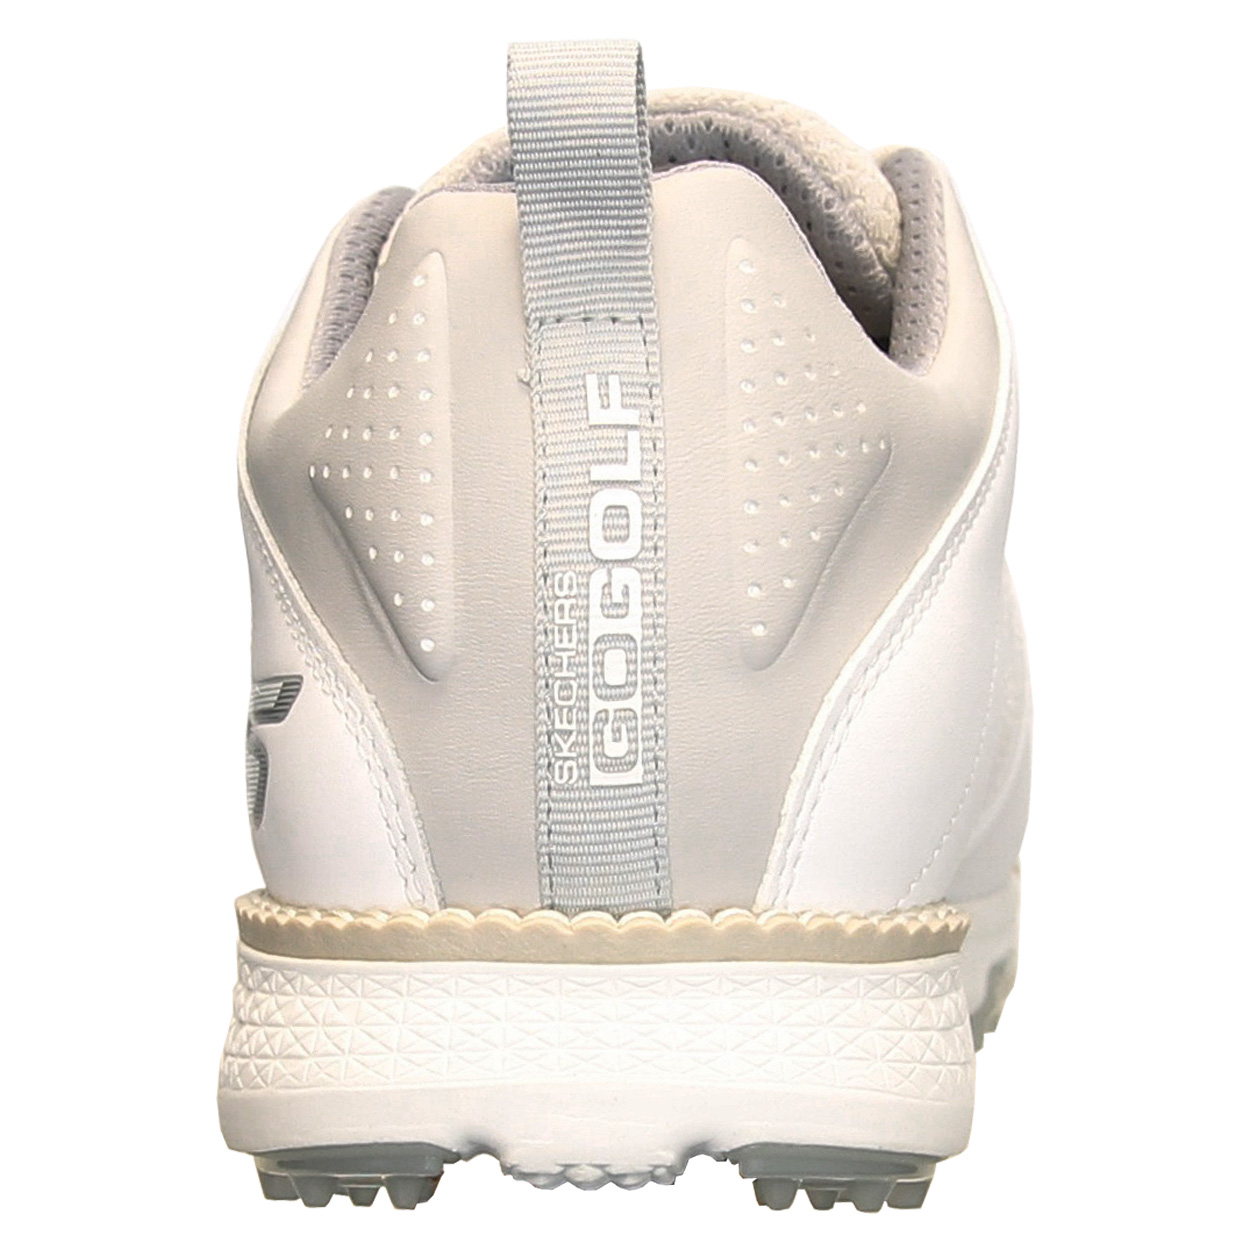 Skechers-Men-039-s-GOgolf-Elite-3-Spikeless-Golf-Shoe-New thumbnail 7